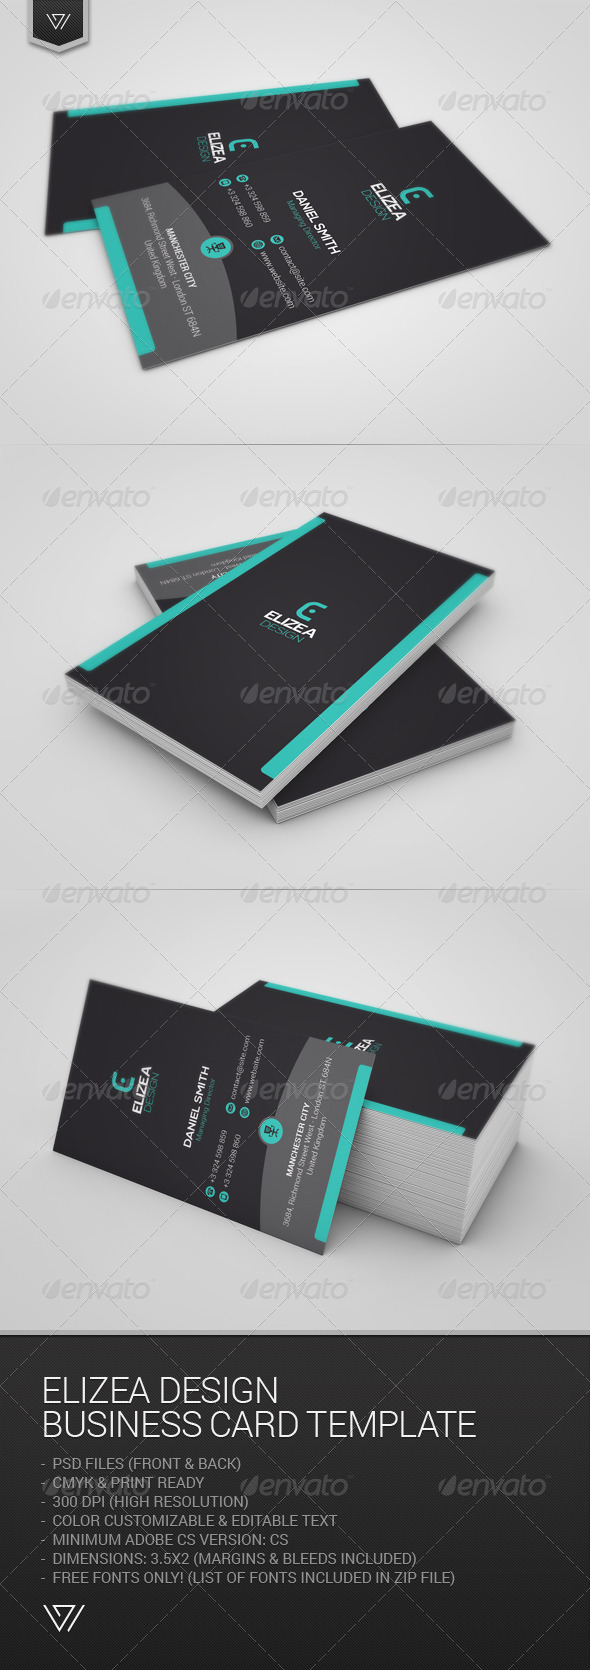 GraphicRiver Elizea Design Business Card 7664716